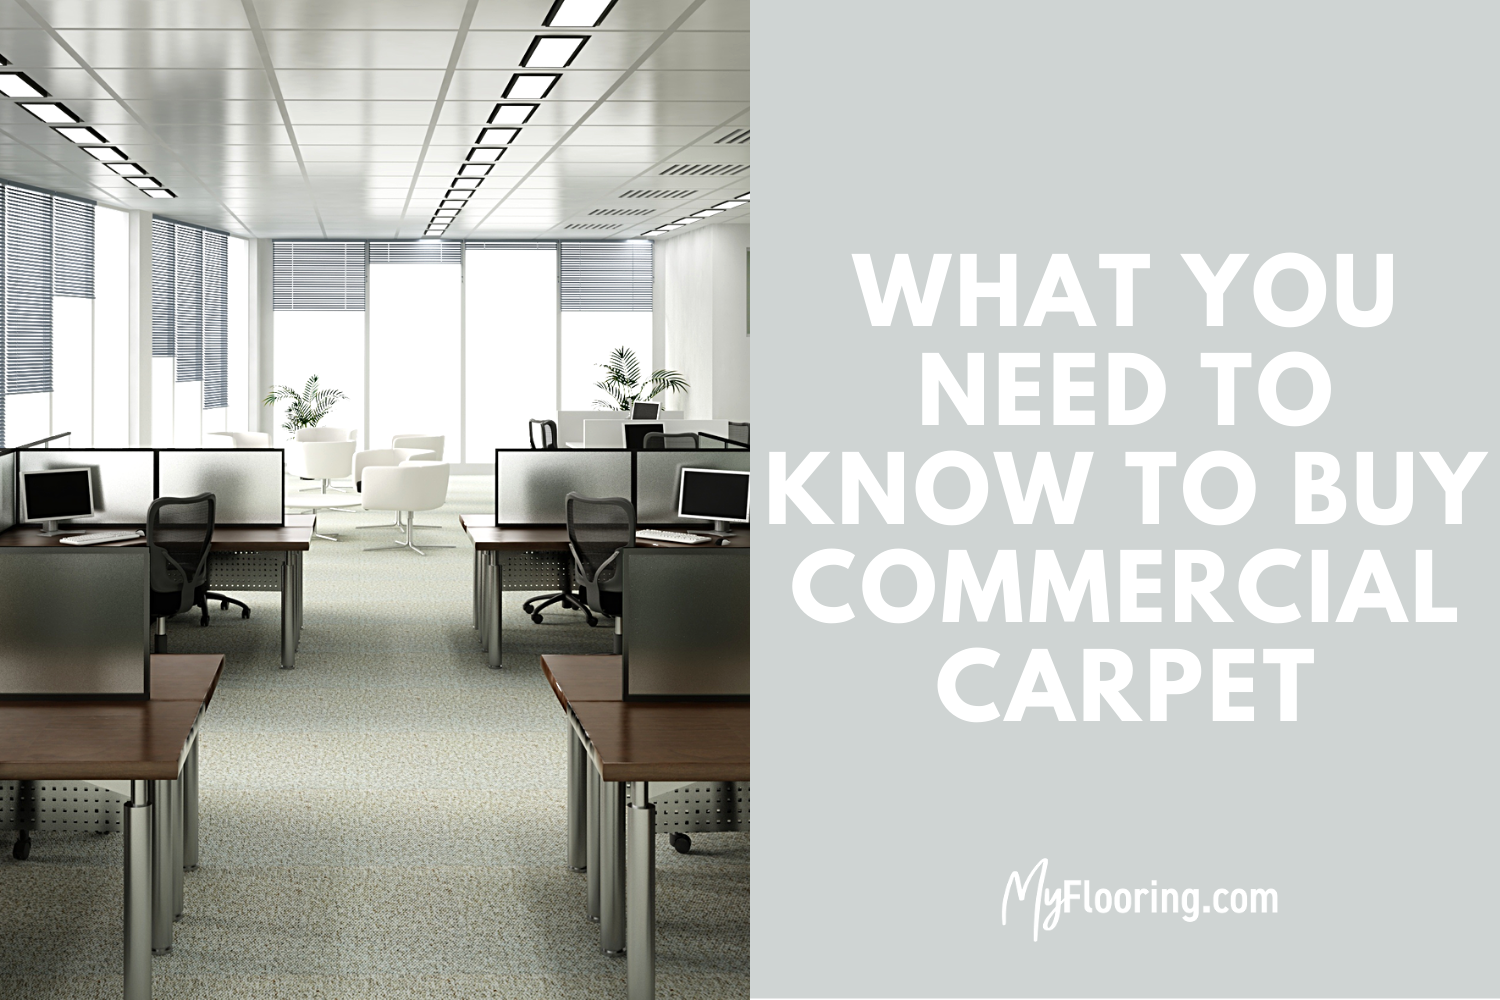 Commercial Carpet Buying Guide: Benefits, Advantages, & What to Consider